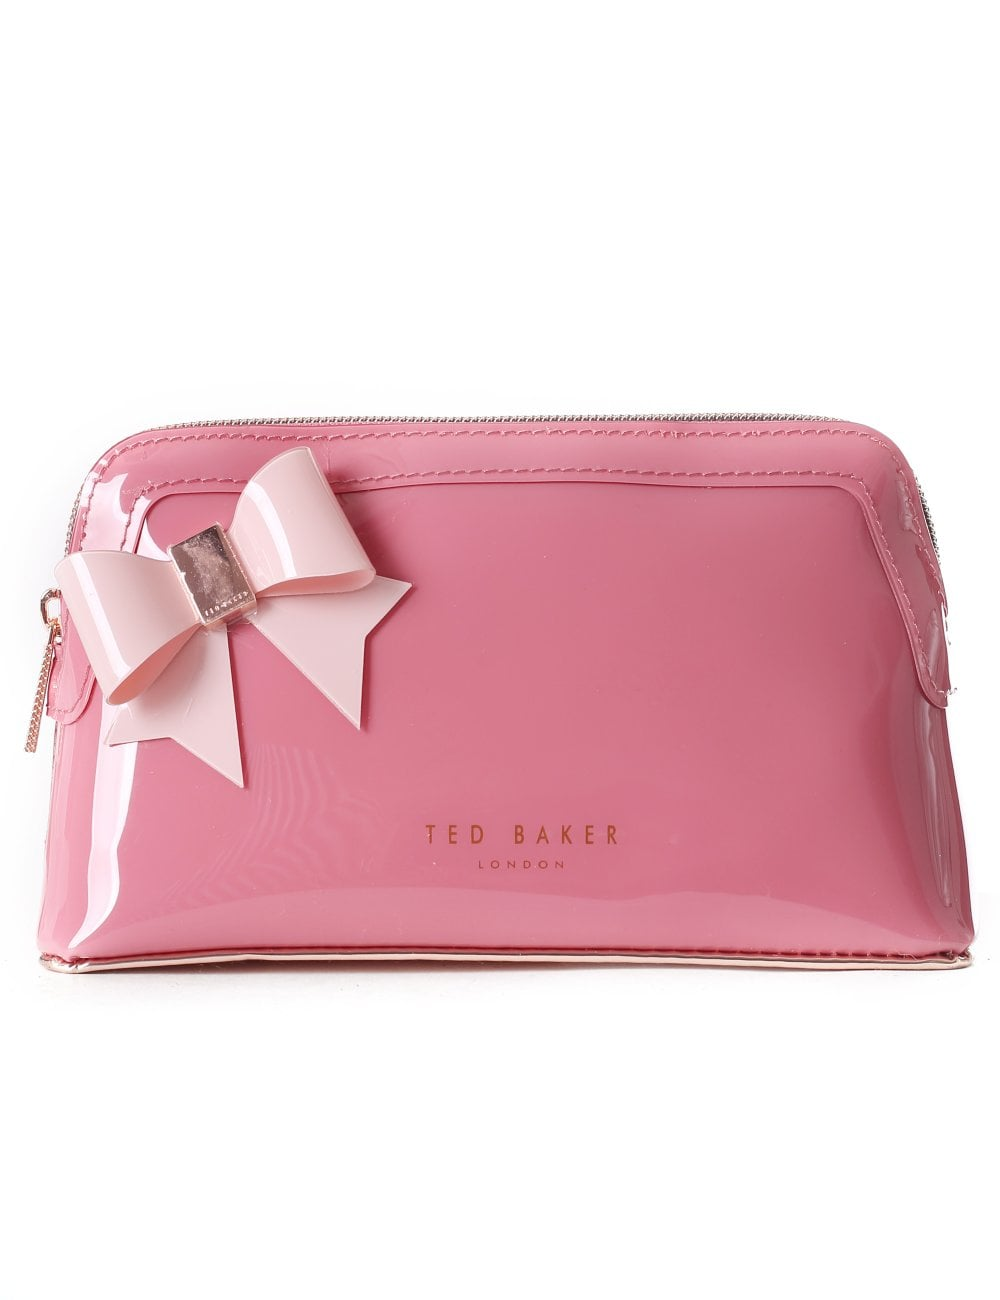 2c90774c0 Ted Baker Ixoriaa Women s Core Bow Make-up Bag